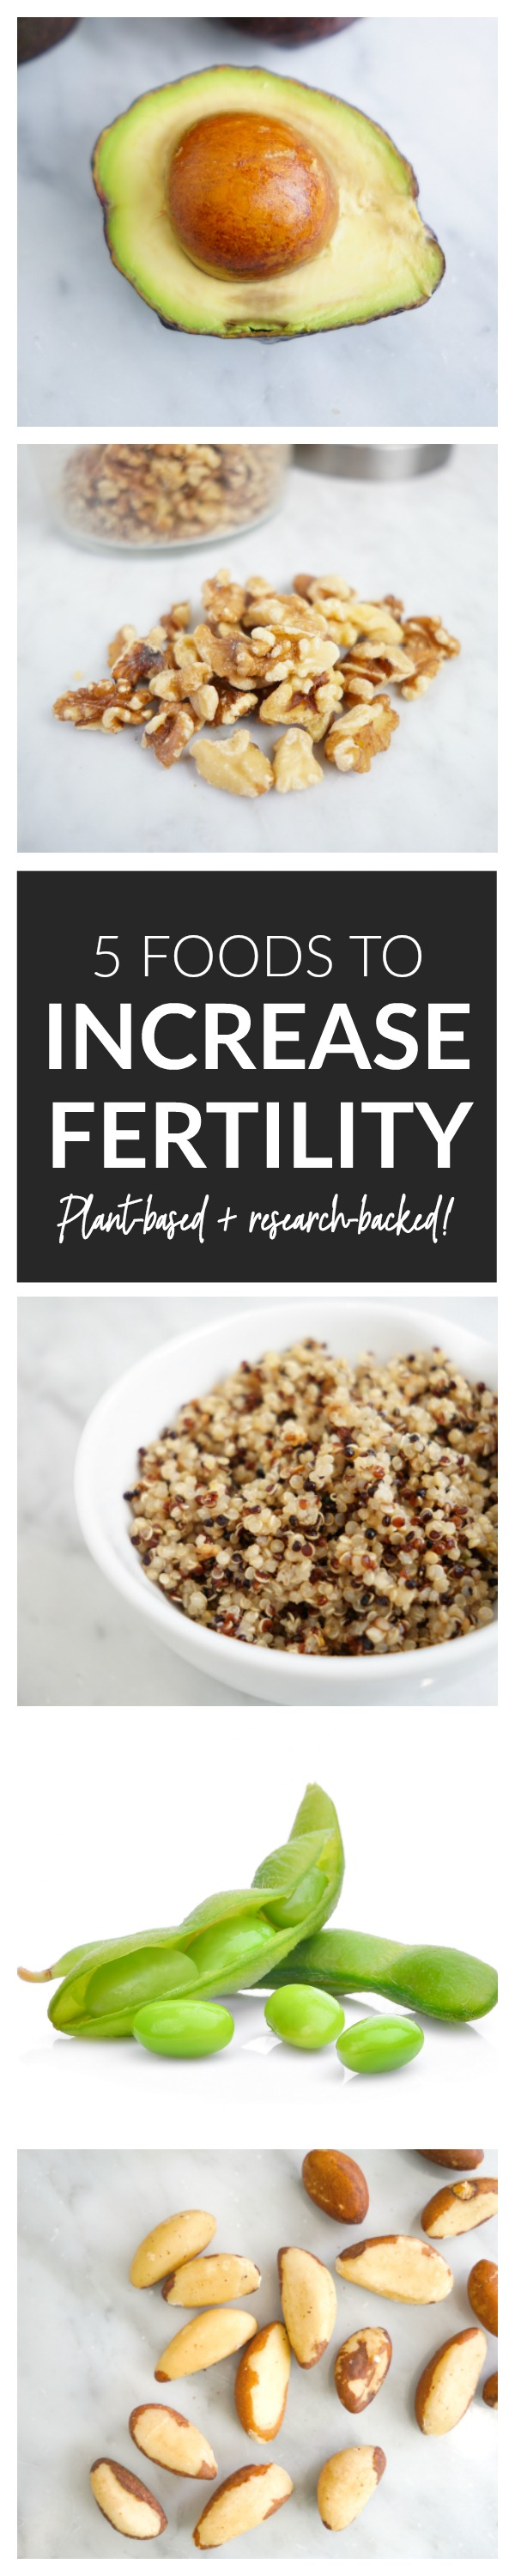 5 Foods to Increase Fertility